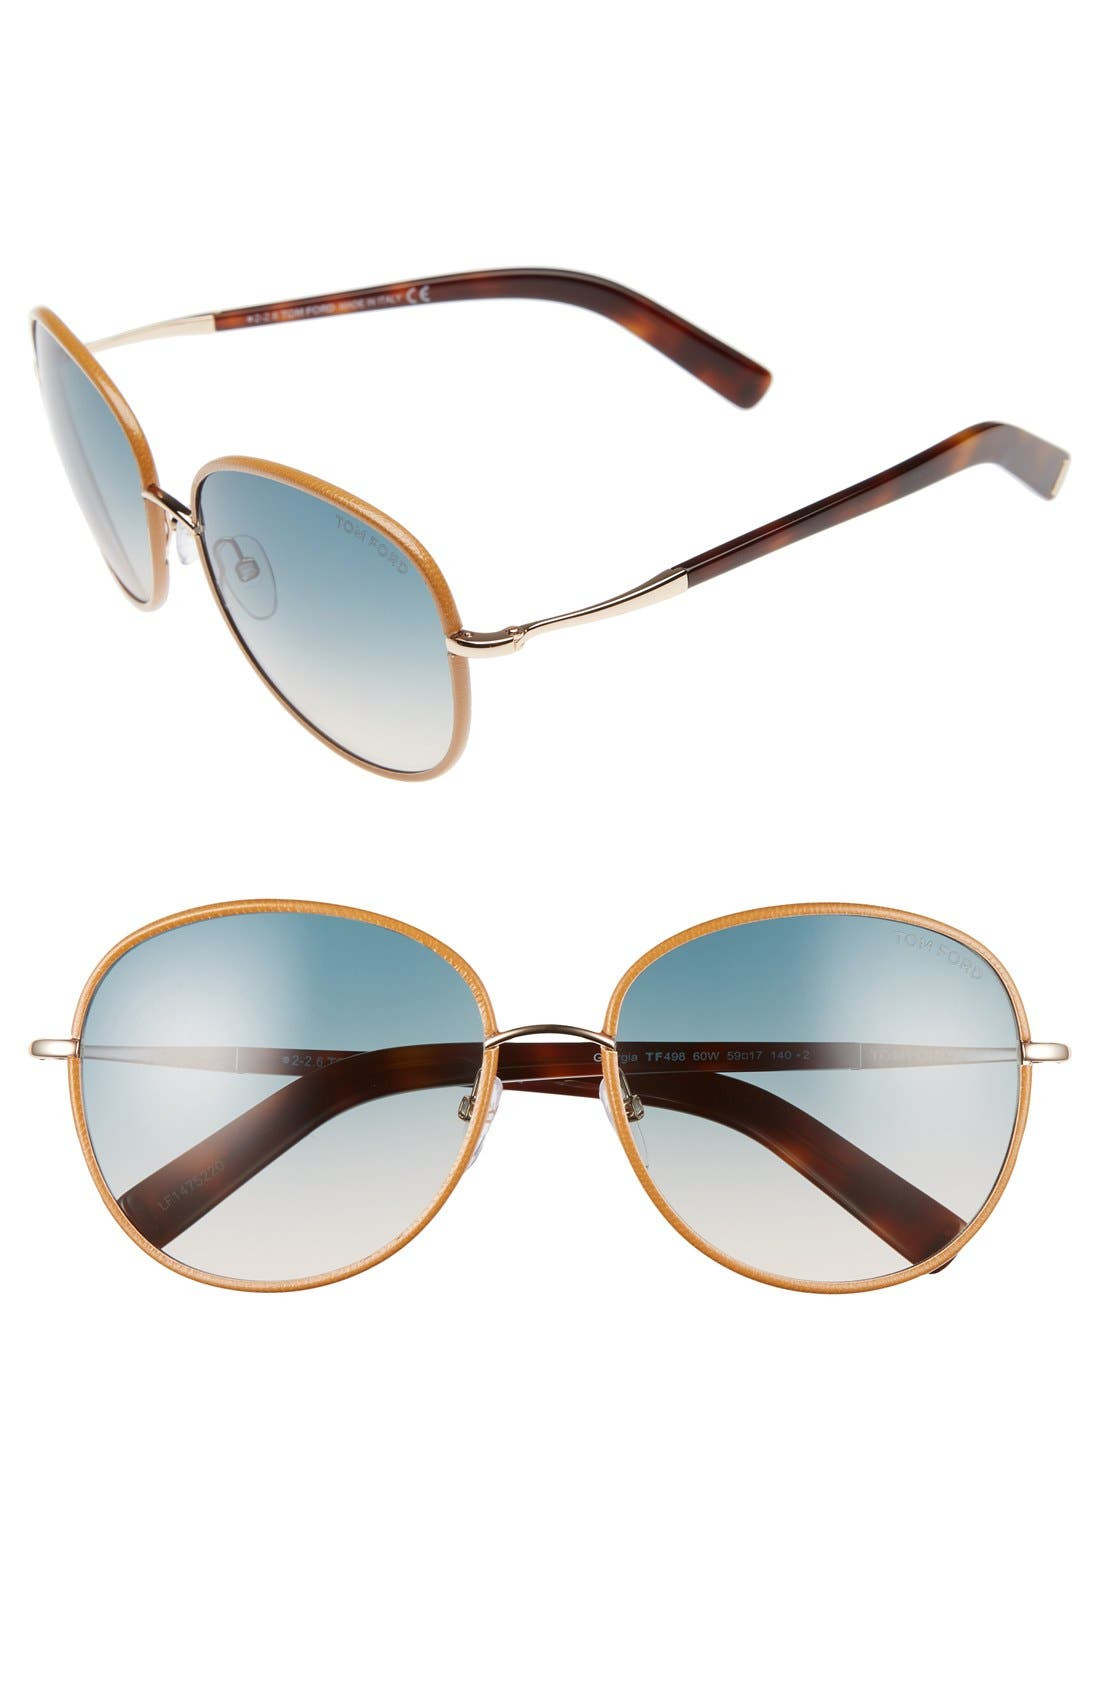 Main Image - Tom Ford Georgia 59mm Sunglasses